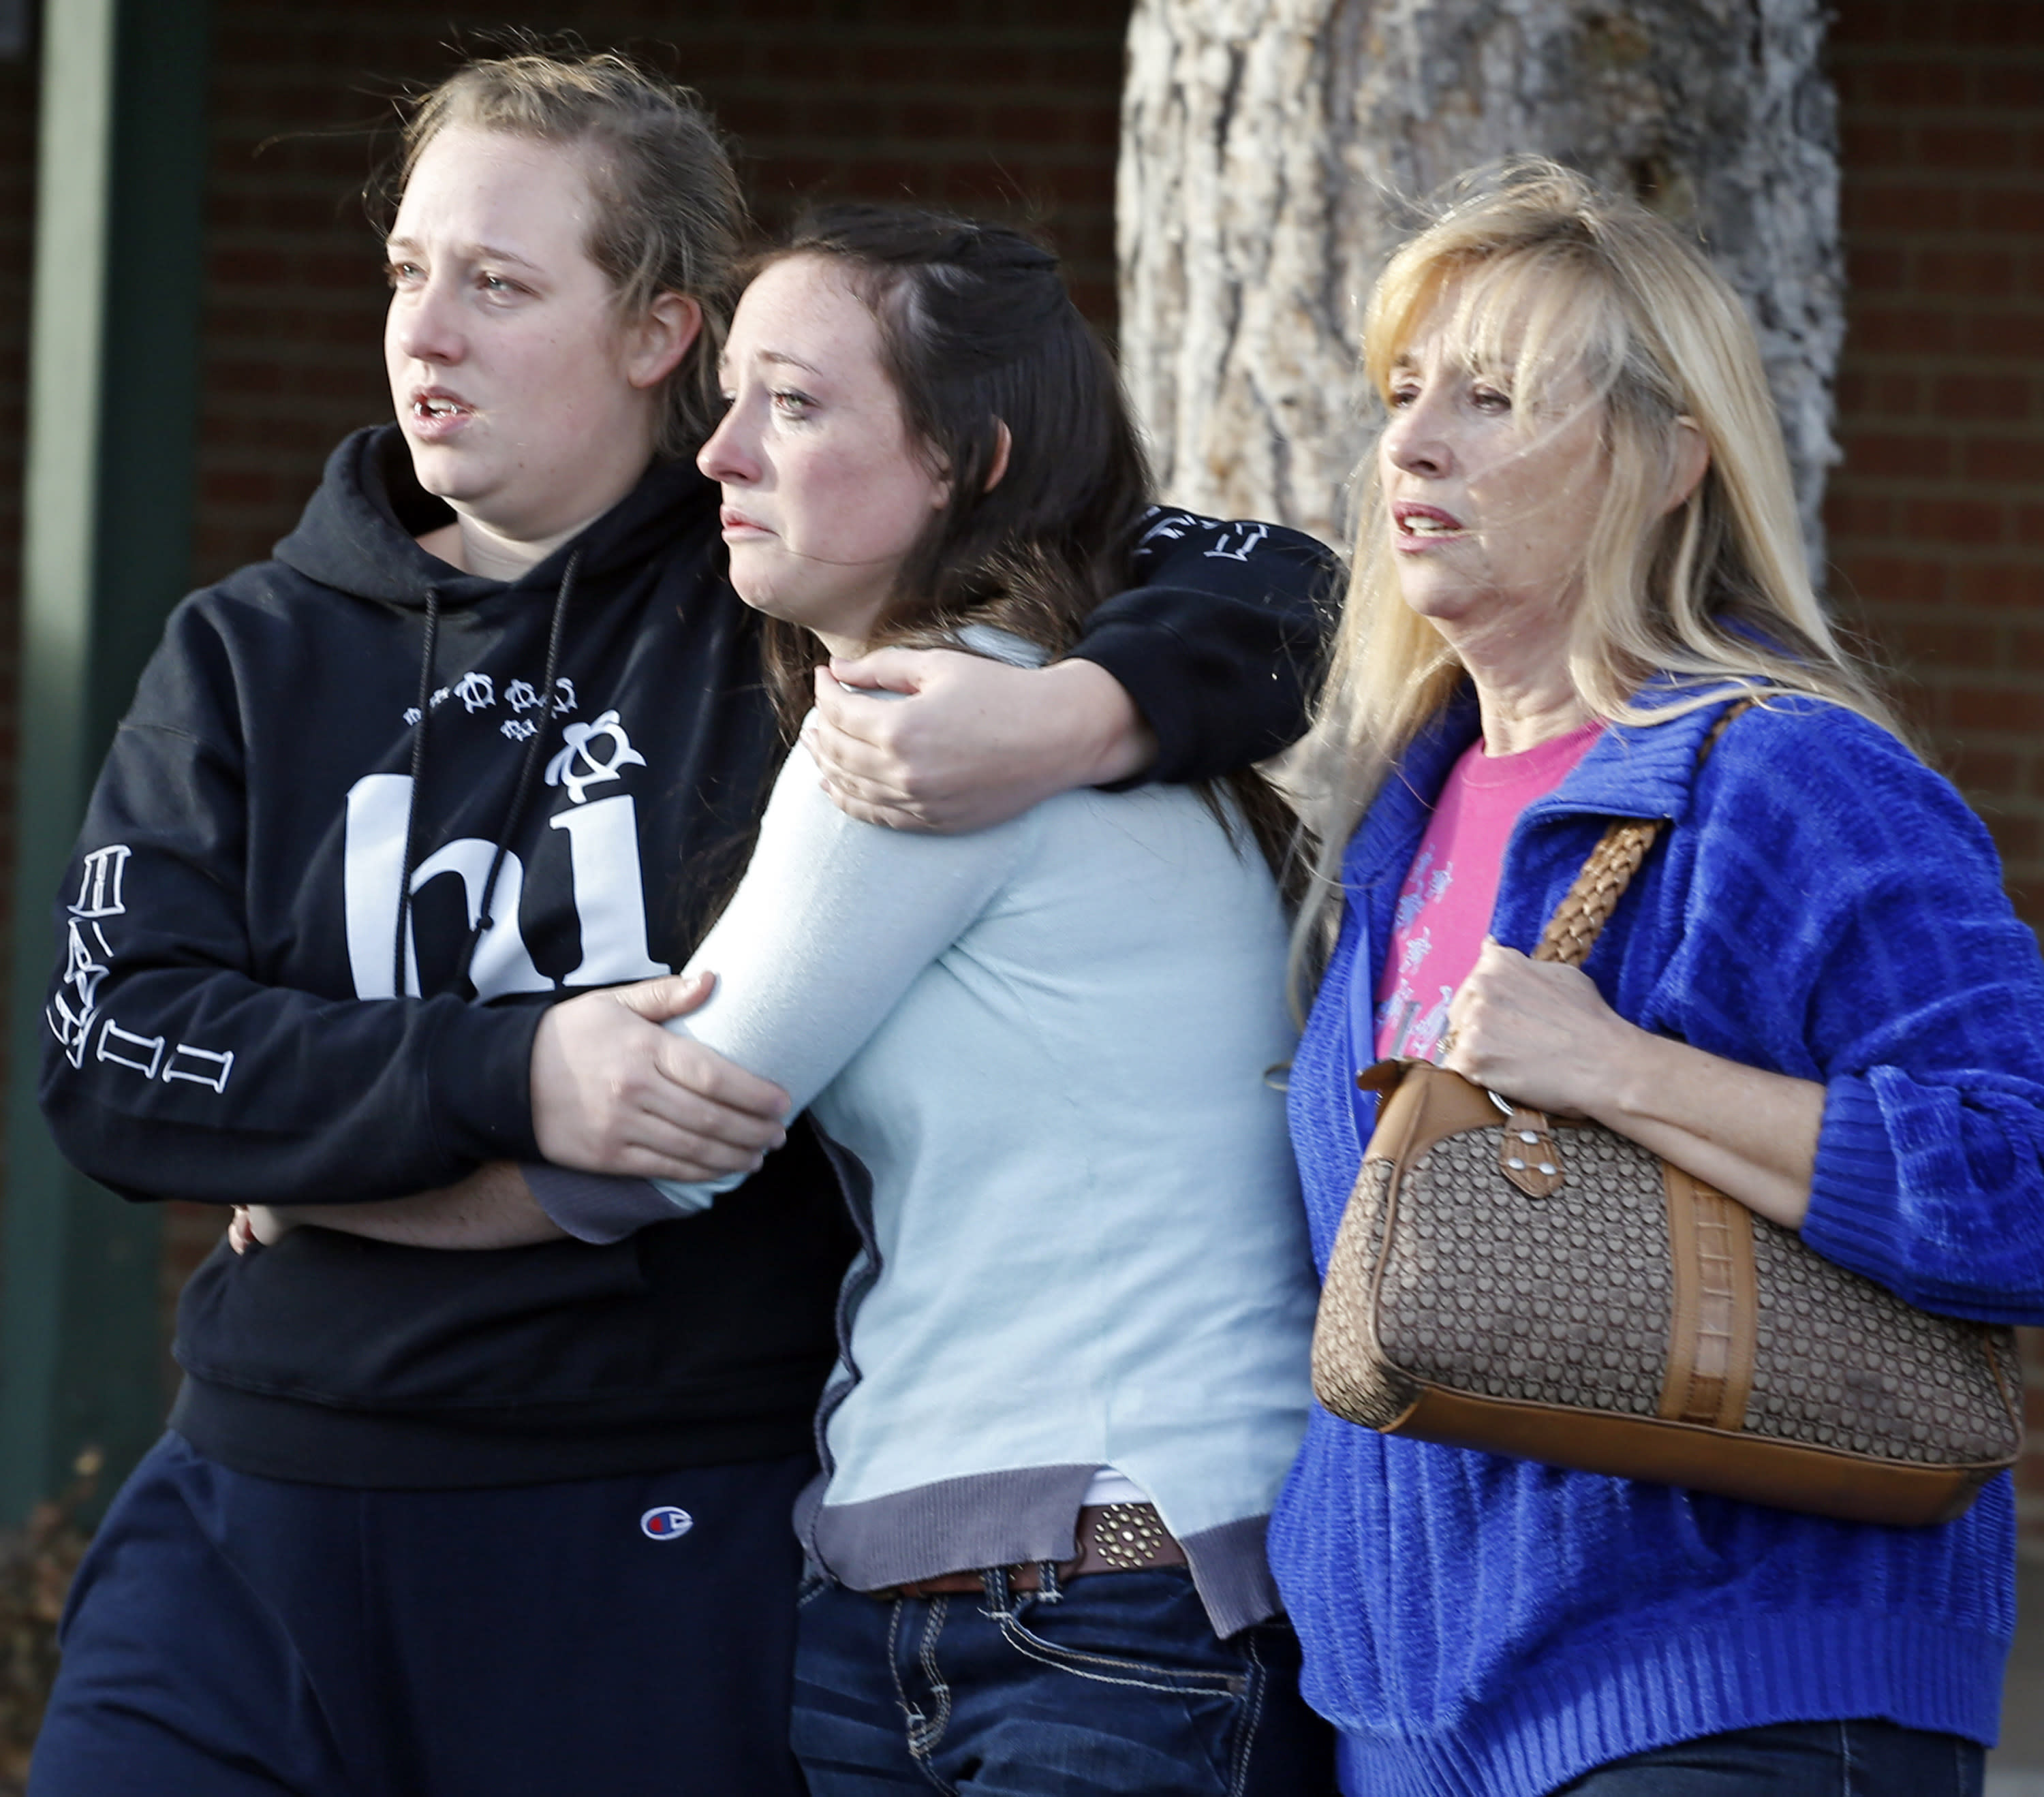 Gunman Dead One Other Student Shot At Arapahoe High: Police Seek Motive In Colorado School Shooting